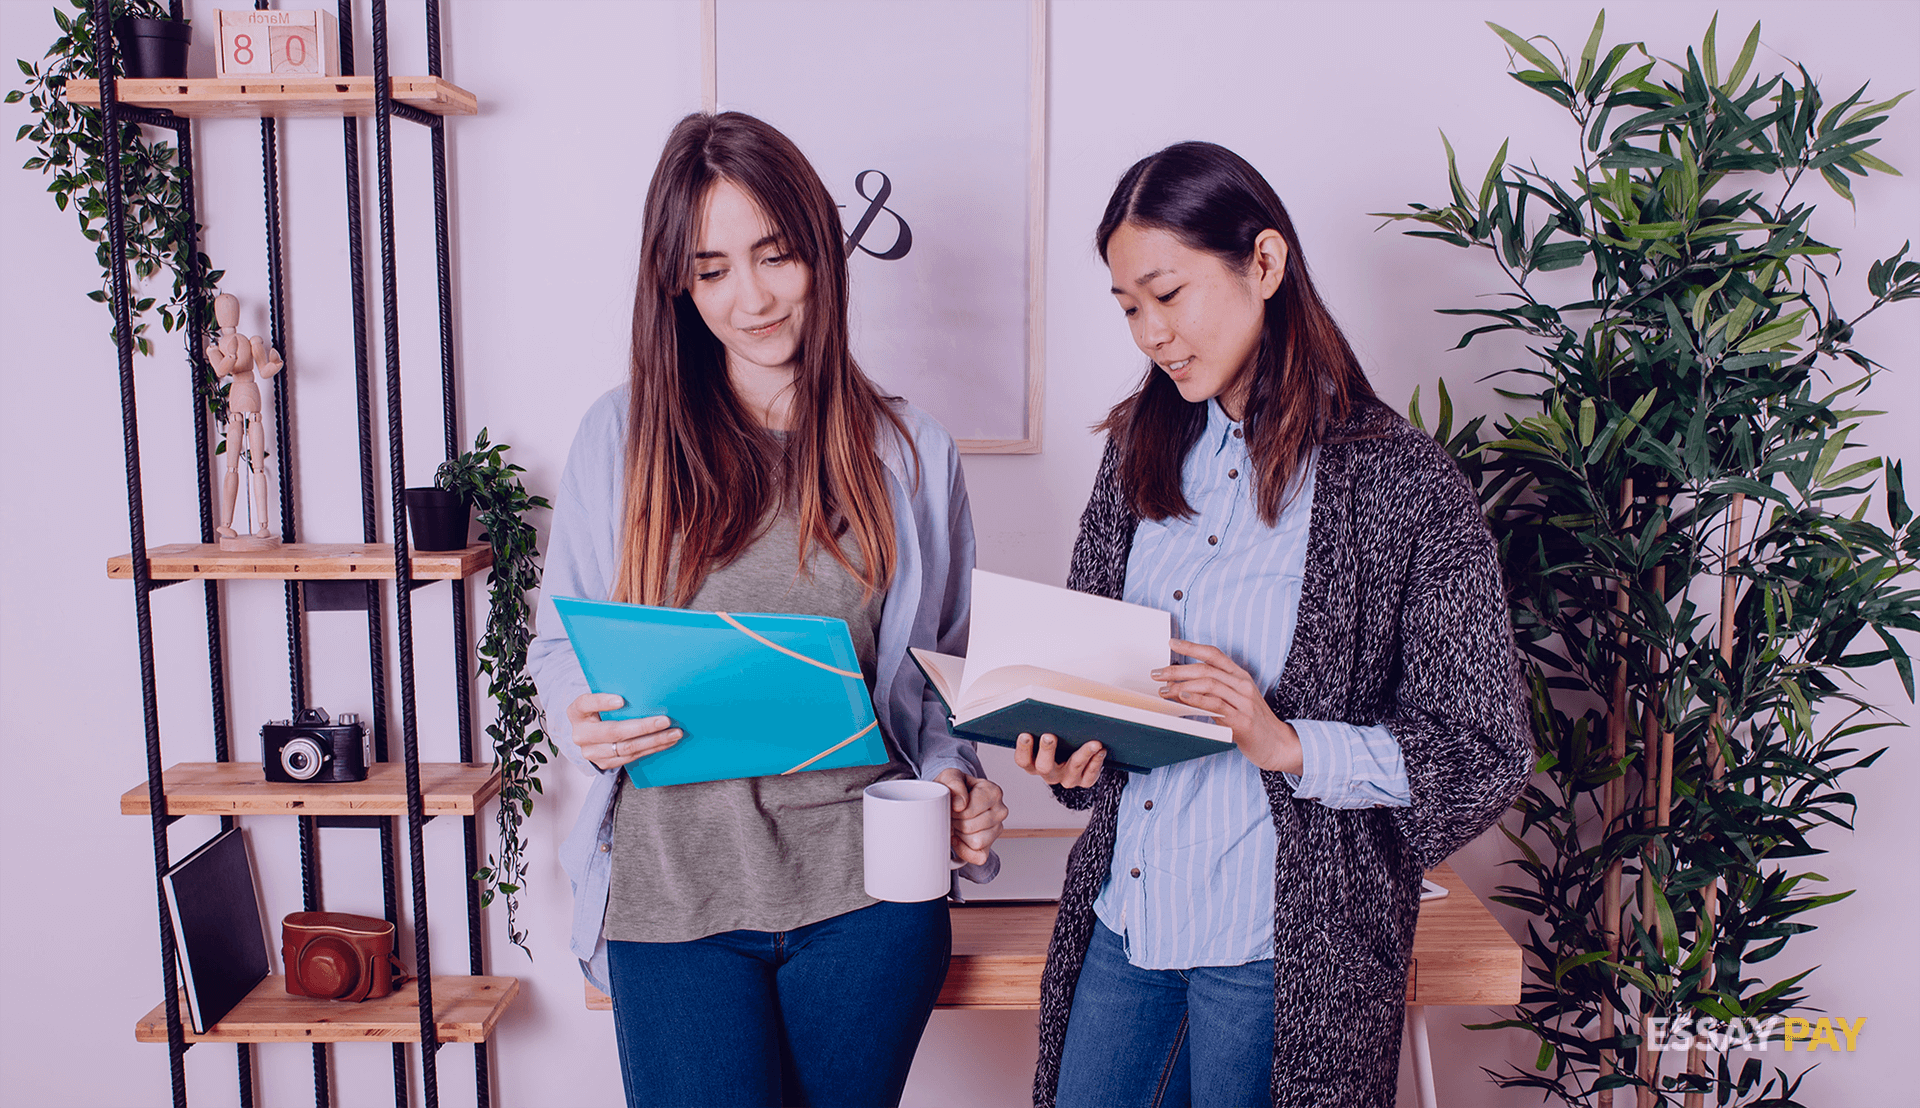 How To Write Essay Papers Essay Writing Service Essay On Health also High School Persuasive Essay Essay Writing Service Only Quality Writers On Essaypaycom Persuasive Essay Examples For High School